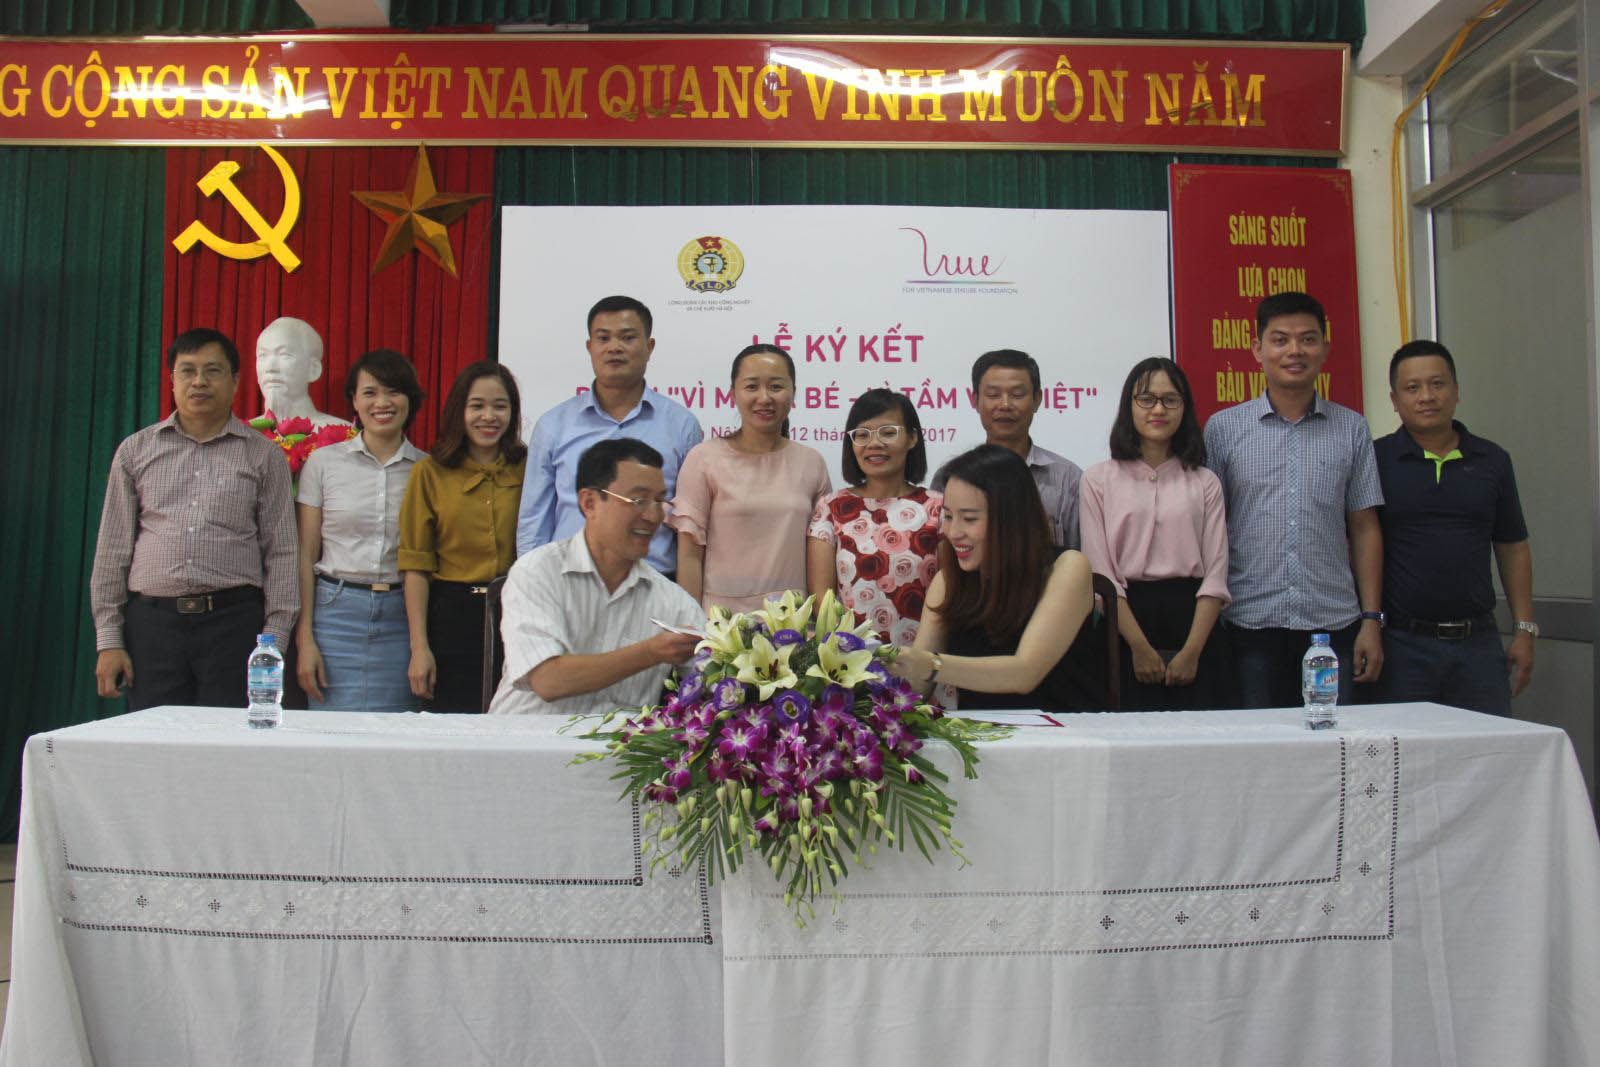 "ky ket thoa thuan du an ""vi me va be – vi tam voc viet"" hinh anh 2"